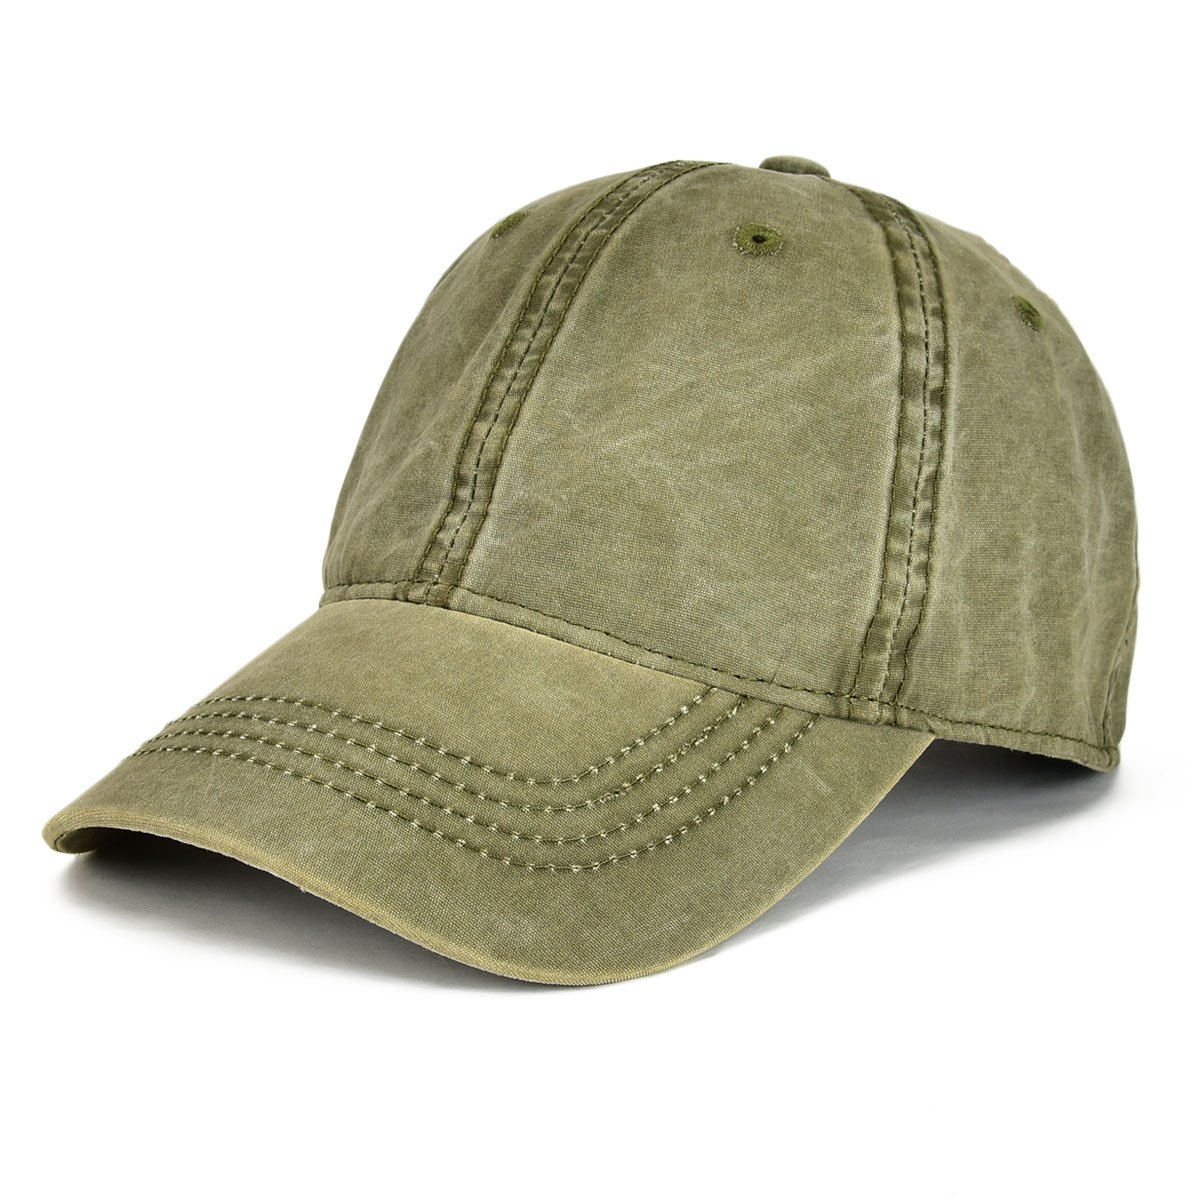 9685311d91368e Army Green VOBOOM Men Washed Cotton Vintage Dad Dad Dad Hat Adjustable  Baseball Cap Trucker Hat b27b9f